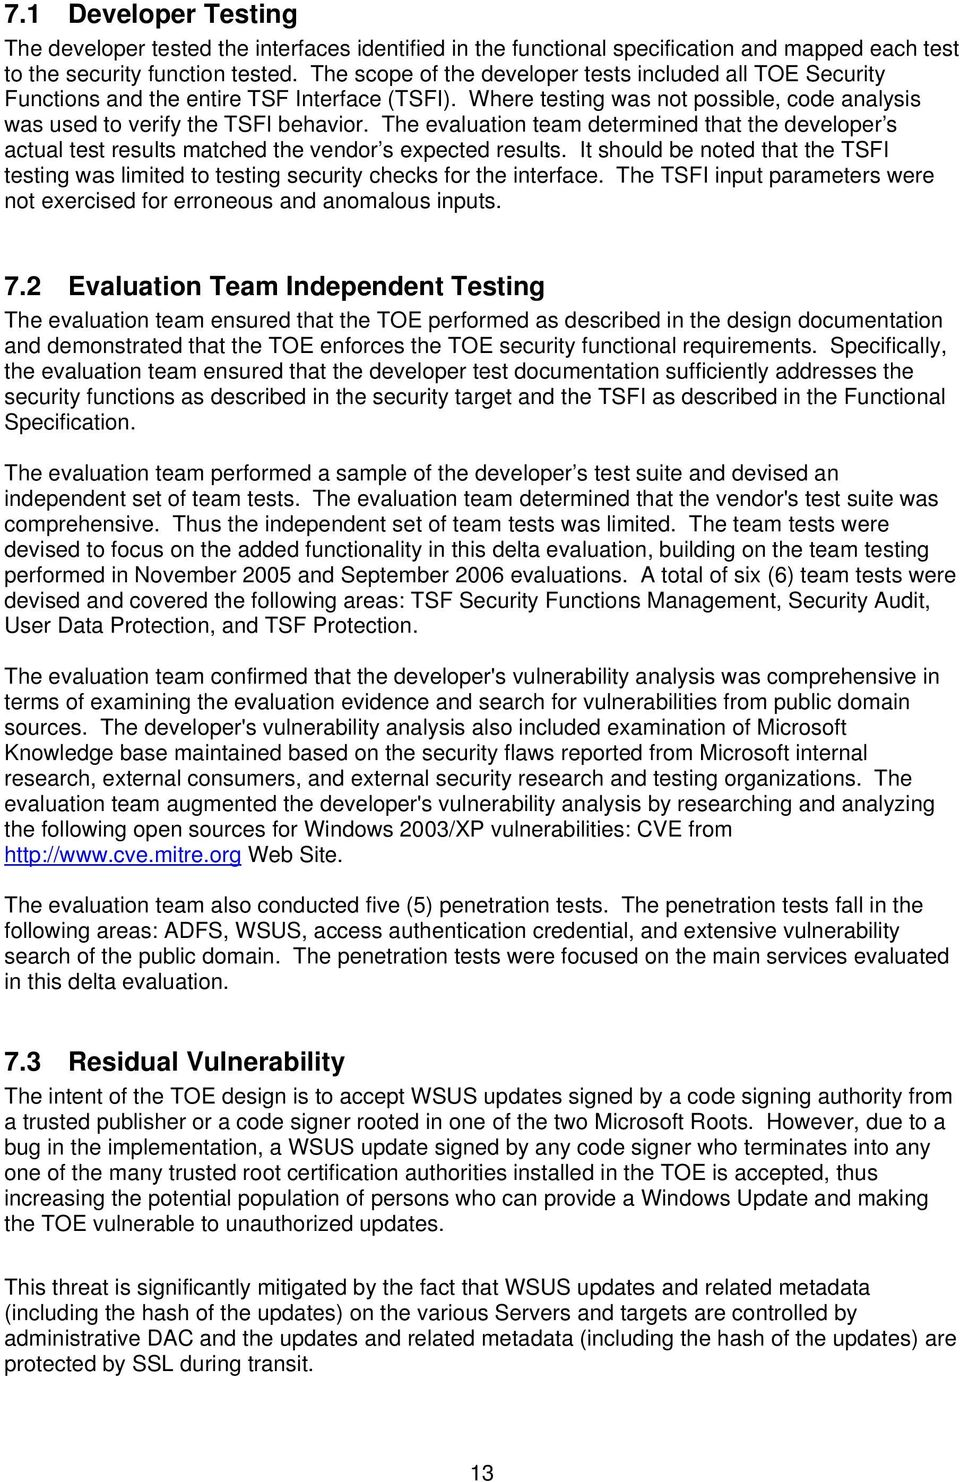 The evaluatin team determined that the develper s actual test results matched the vendr s expected results.